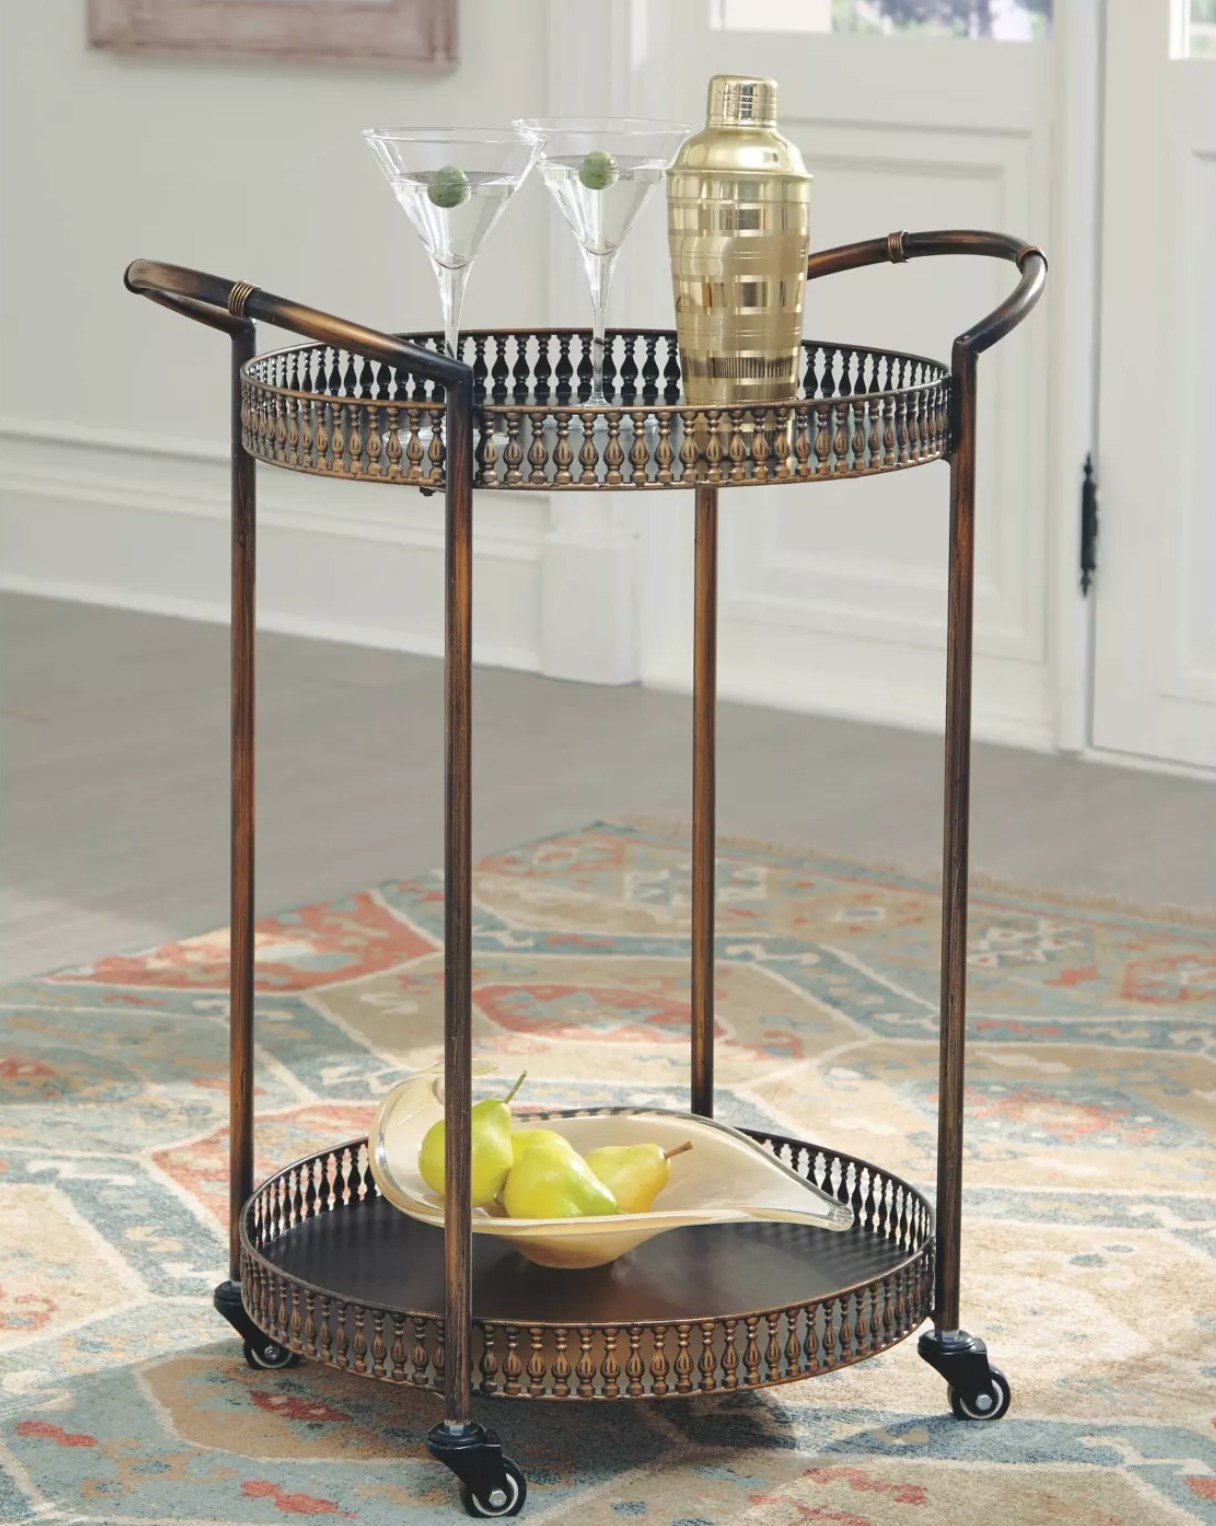 The bar cart with a shaker and two martinis on top